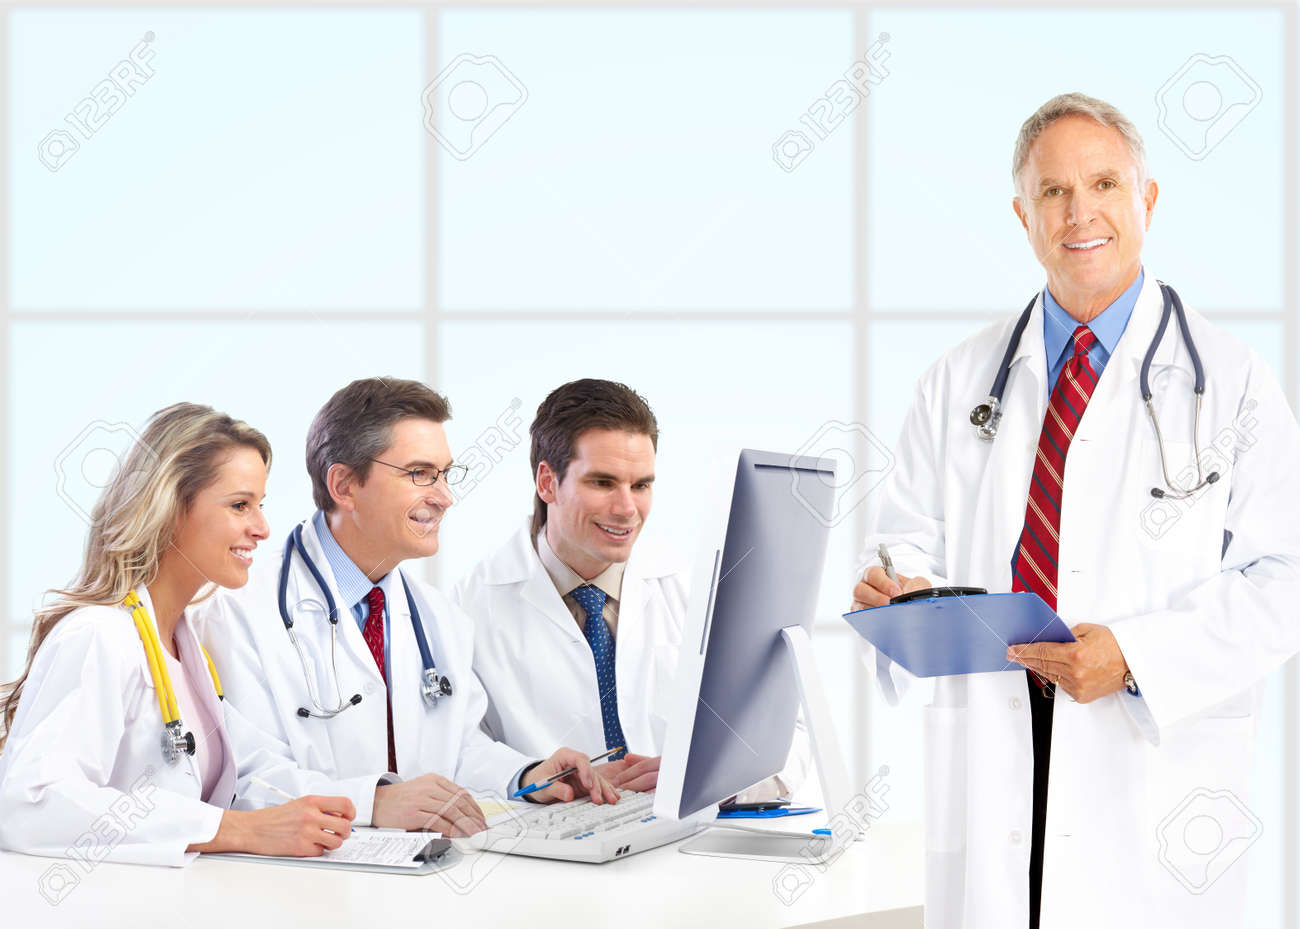 Smiling medical doctors with stethoscopes working with computer. Stock Photo - 8074324